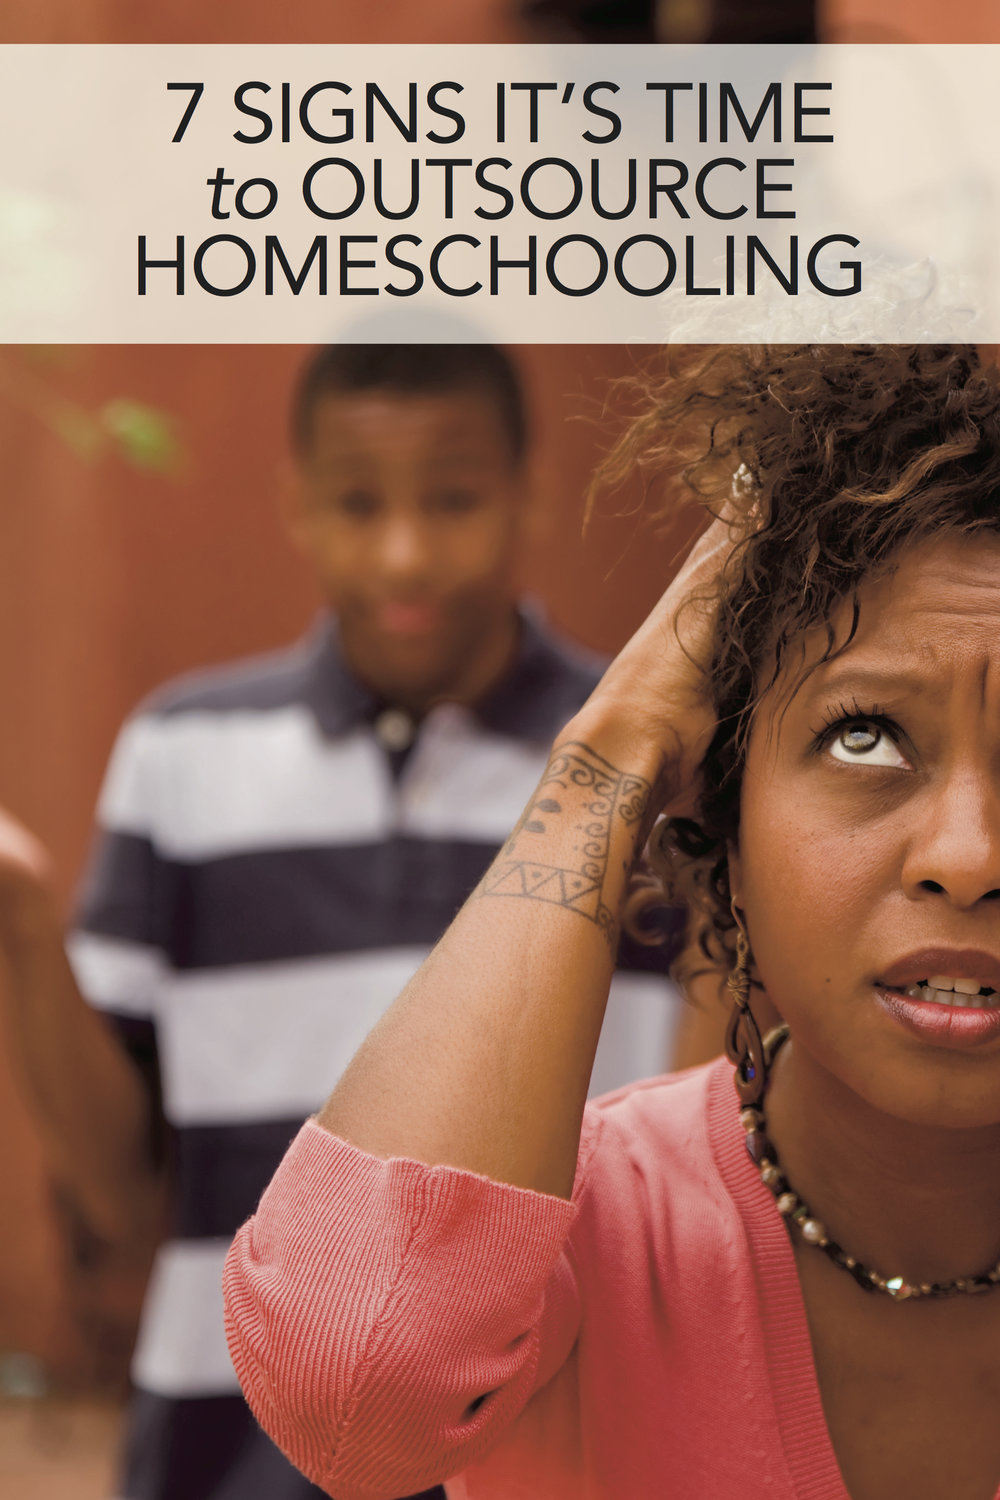 Whether it's looking into school options, hiring a tutor, or just finding an outside class for a specific subject, sometimes homeschooling means  not  doing it yourself.